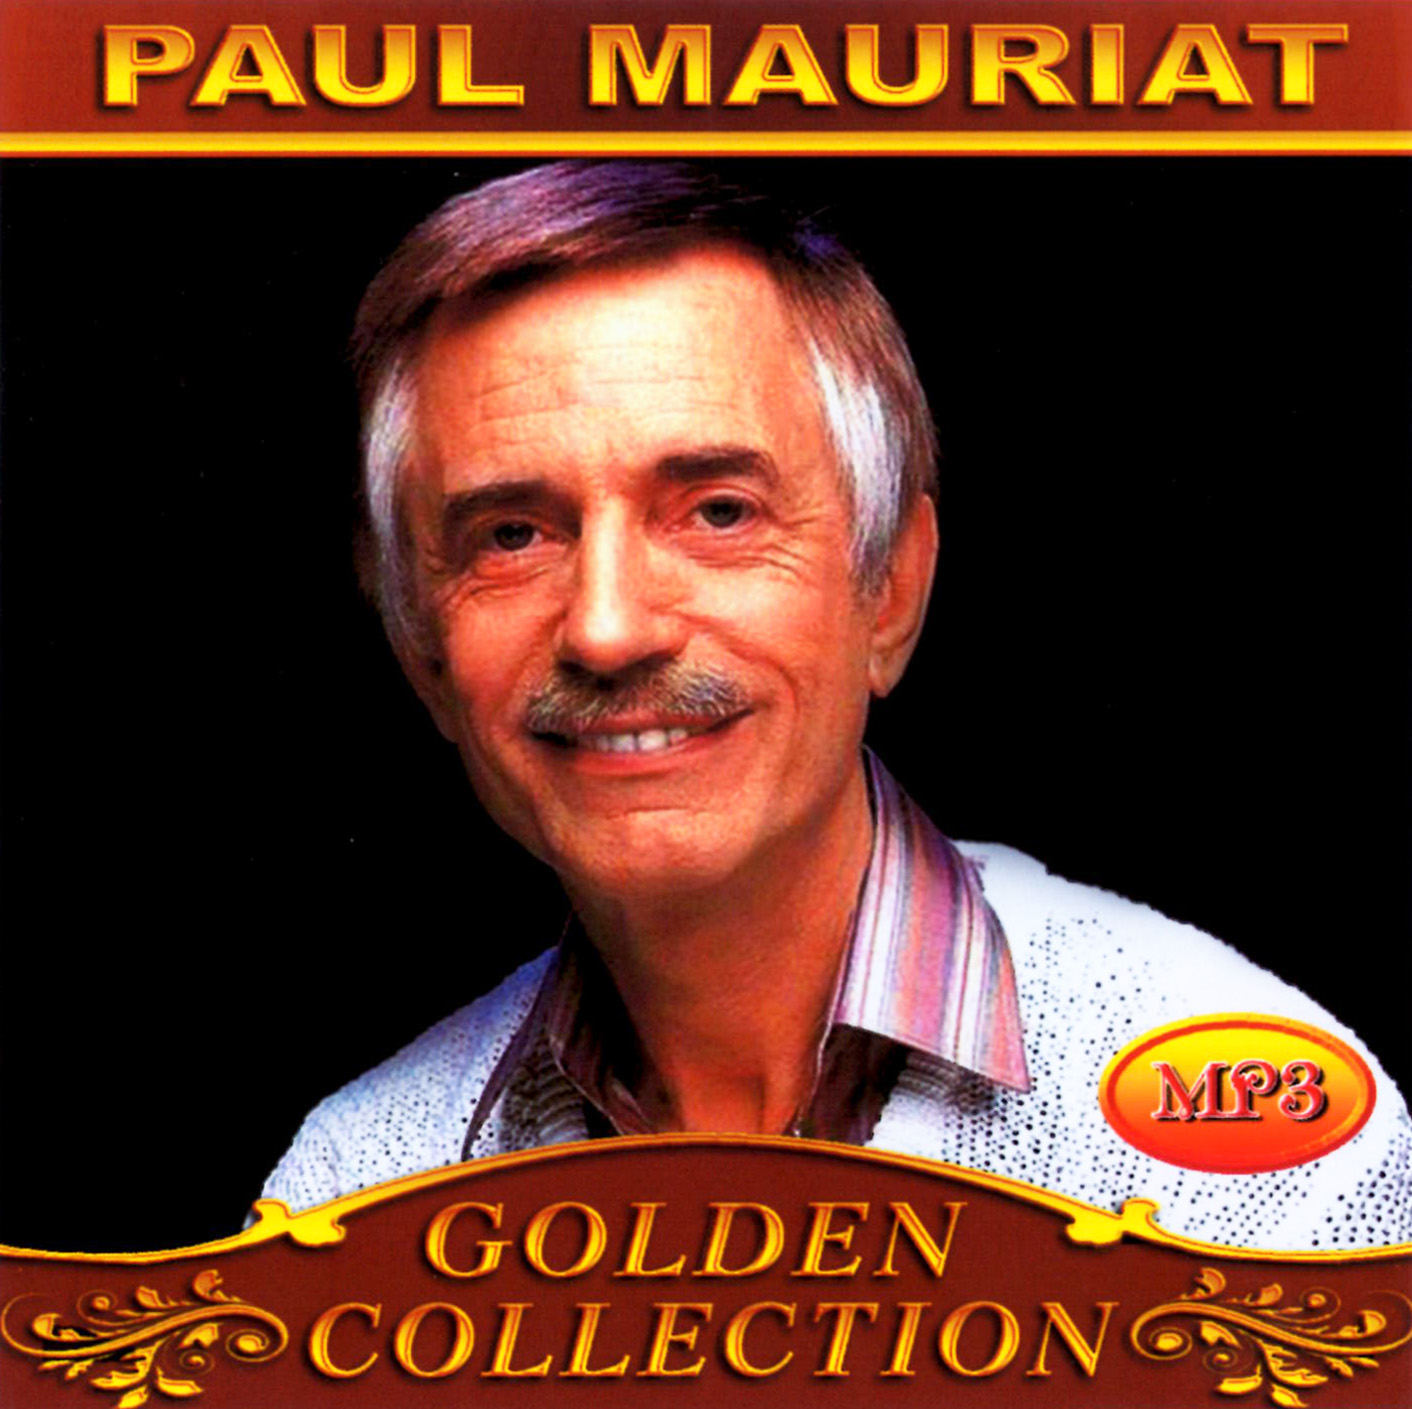 Paul Mauriat [mp3]